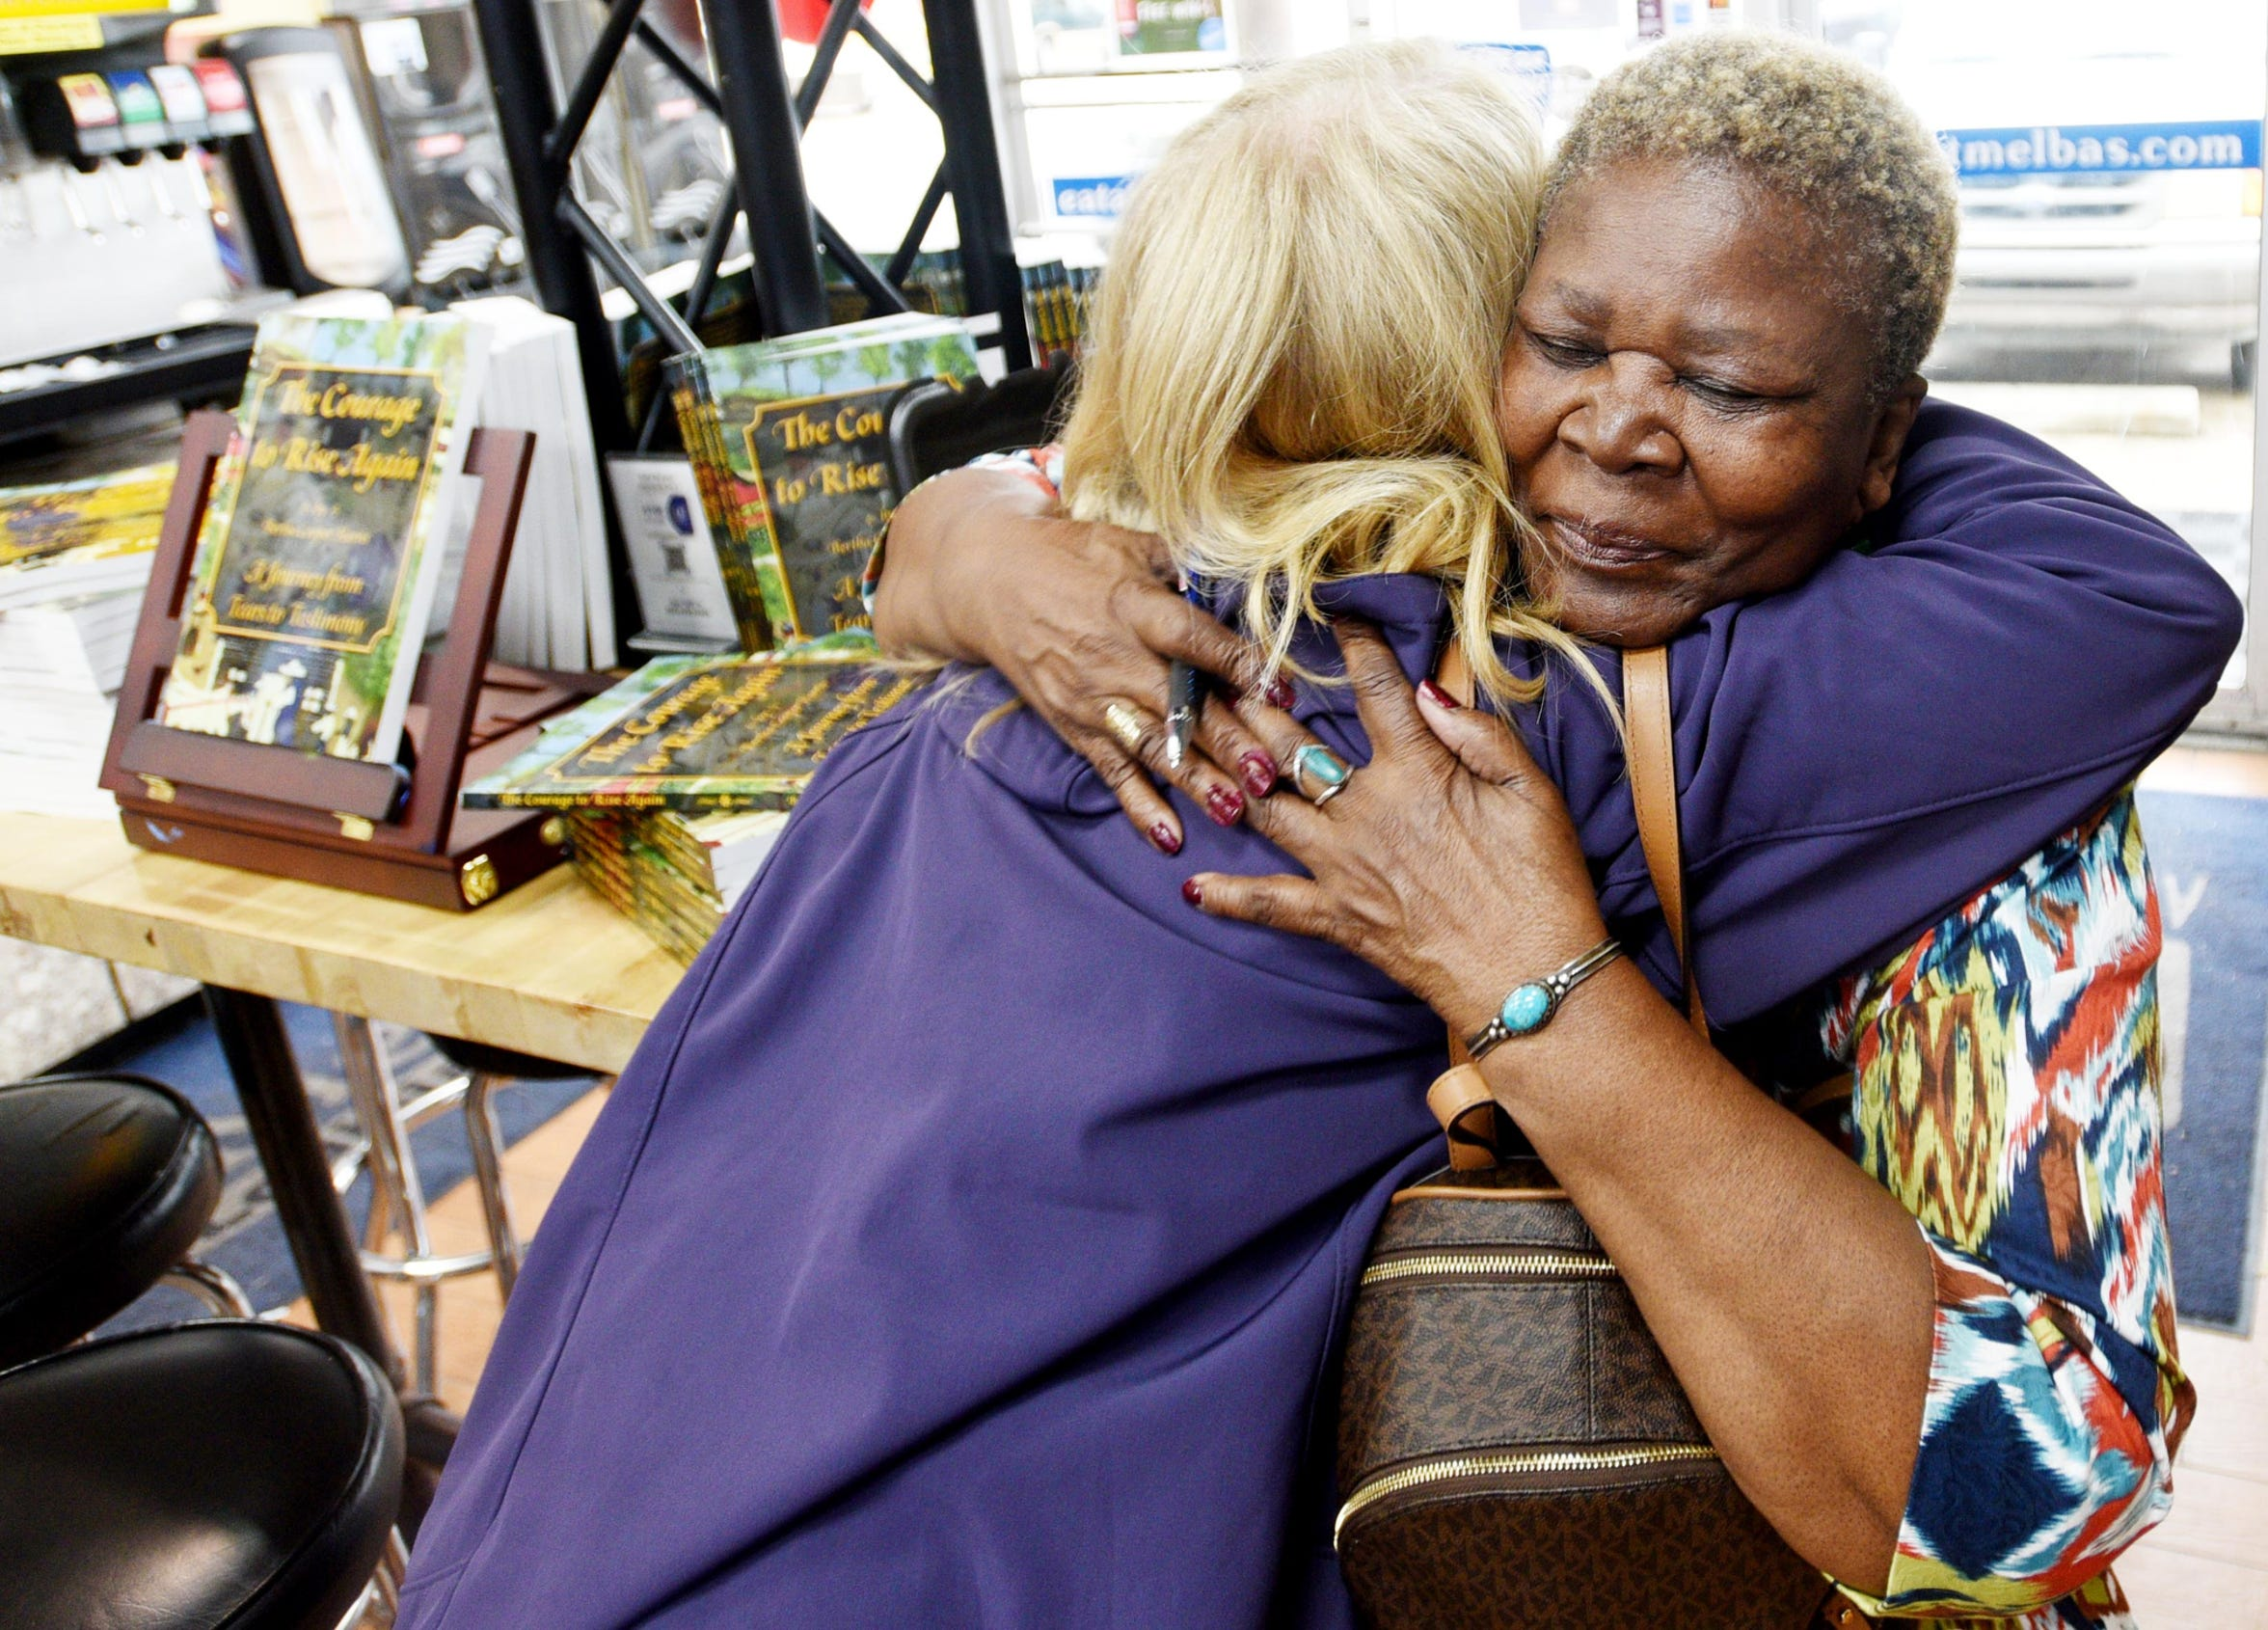 Shreveport author Bertha Harris gets a hug from Lori Newton during the book signing event at Melba's Poboys in New Orleans.